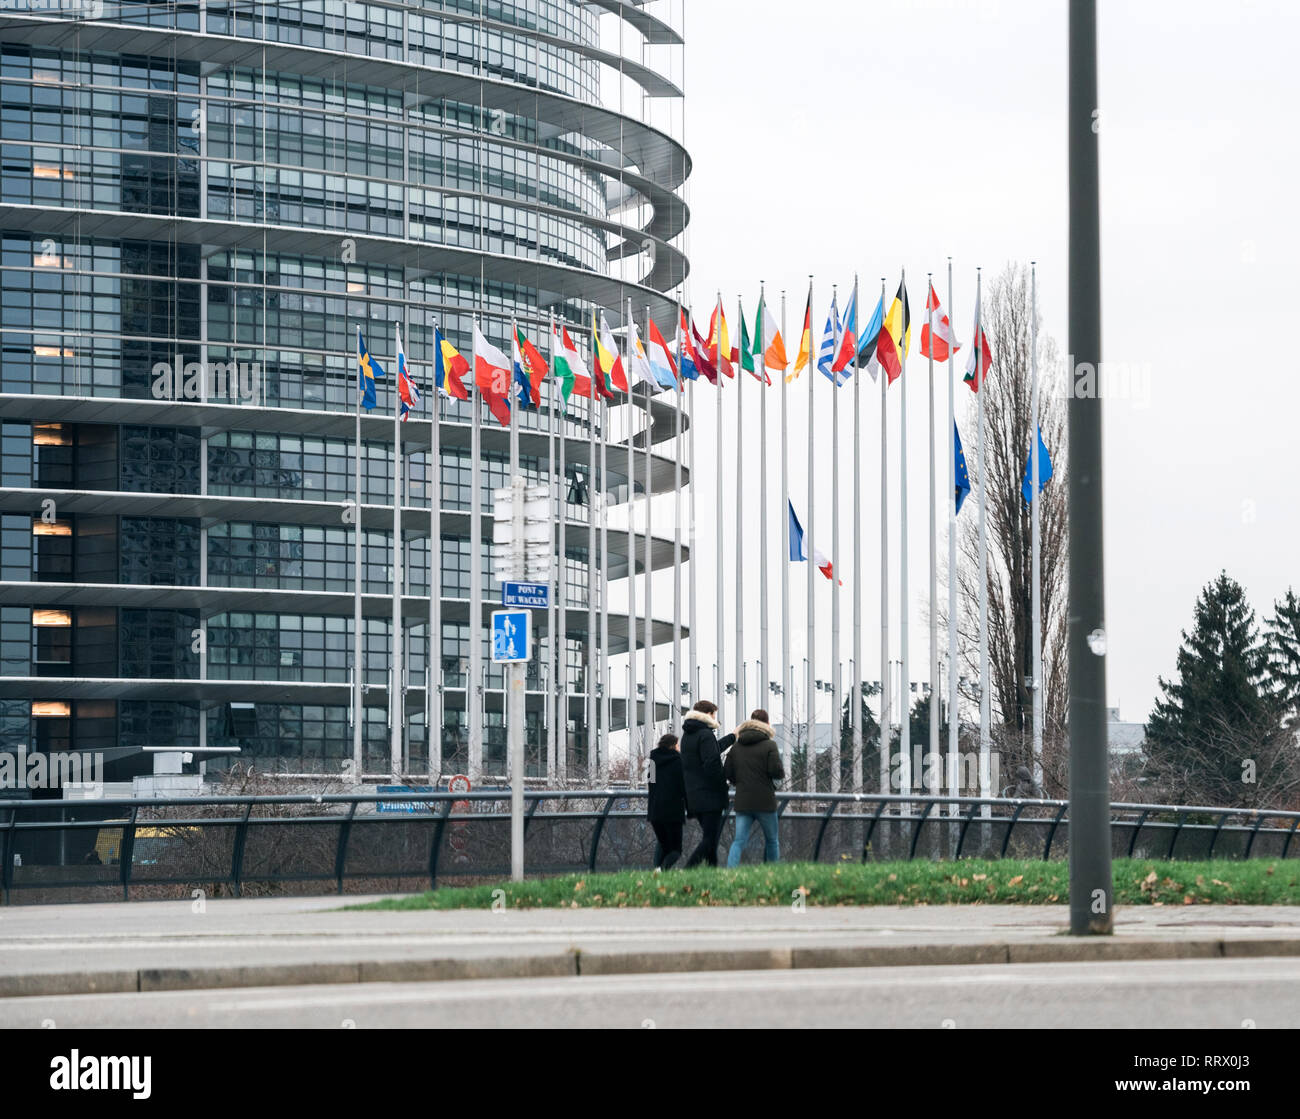 STRASBOURG, FRANCE - DEC 11, 2018: Pedestrians walking with European Union and French Flags flies at half-mast in front of the European Parliament following an attack in center of Strasbourg during annual Christmas Market - Stock Image